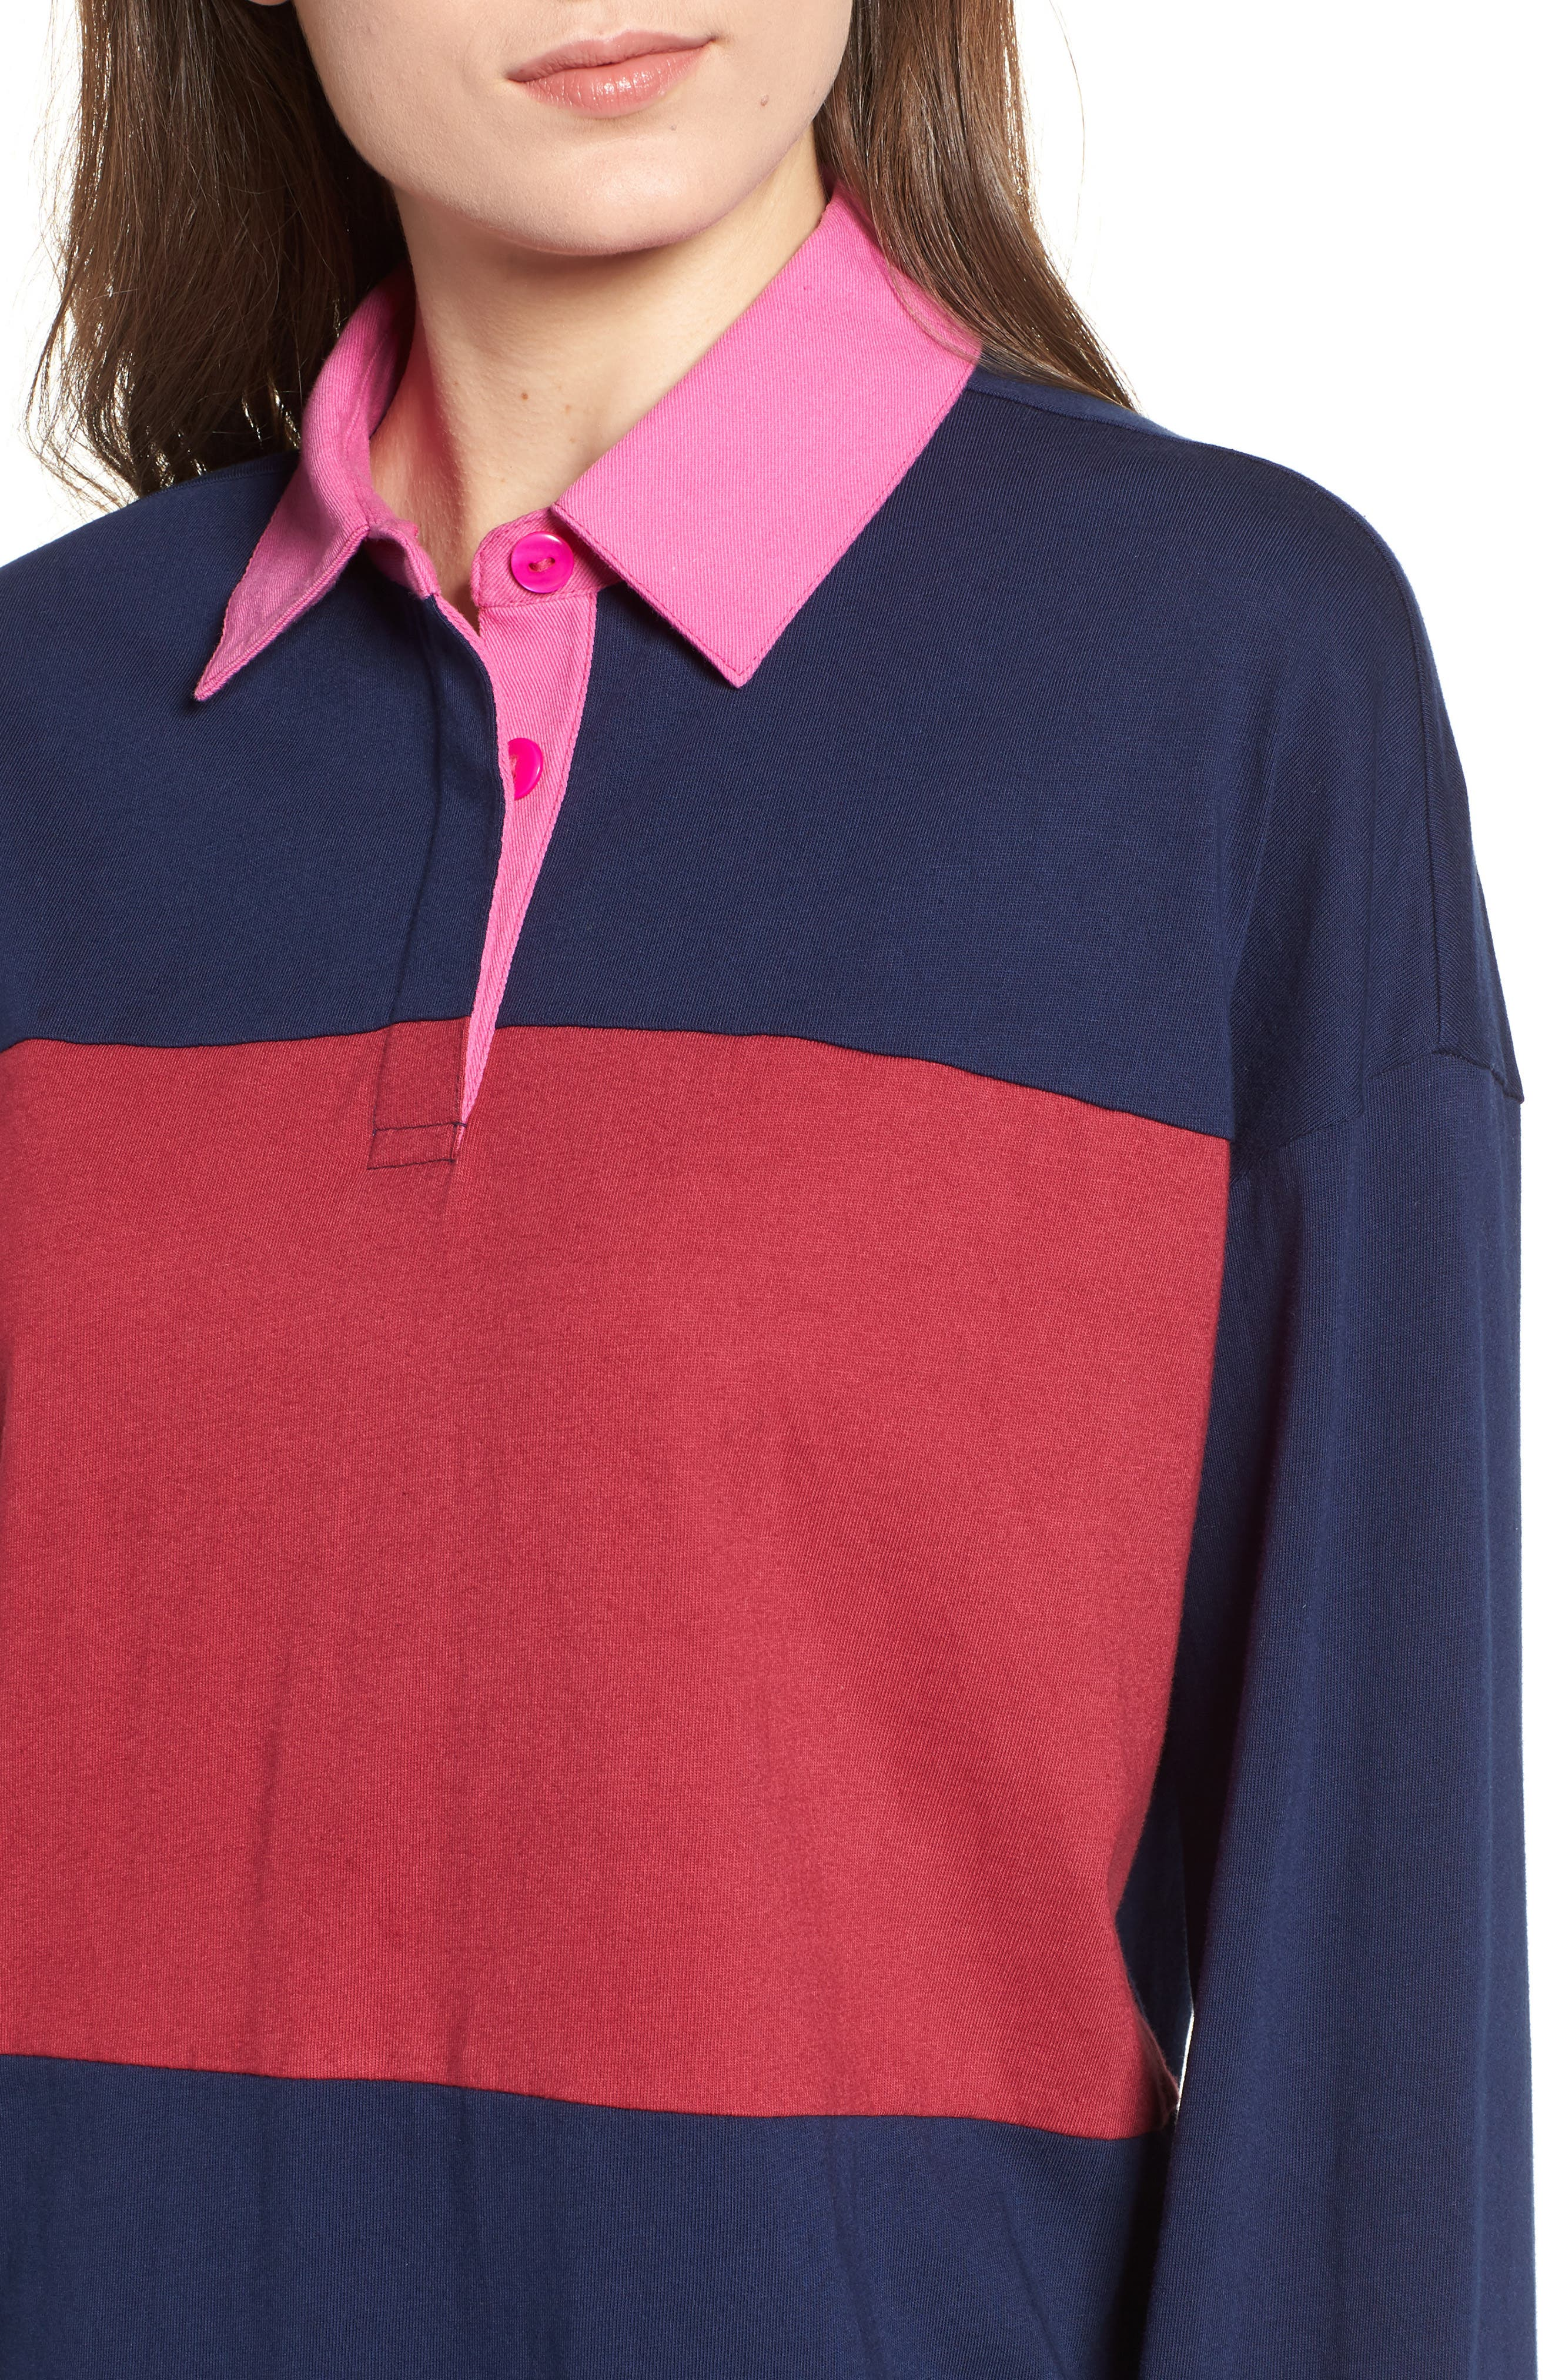 Rugby Polo,                             Alternate thumbnail 4, color,                             NAVY MARITIME